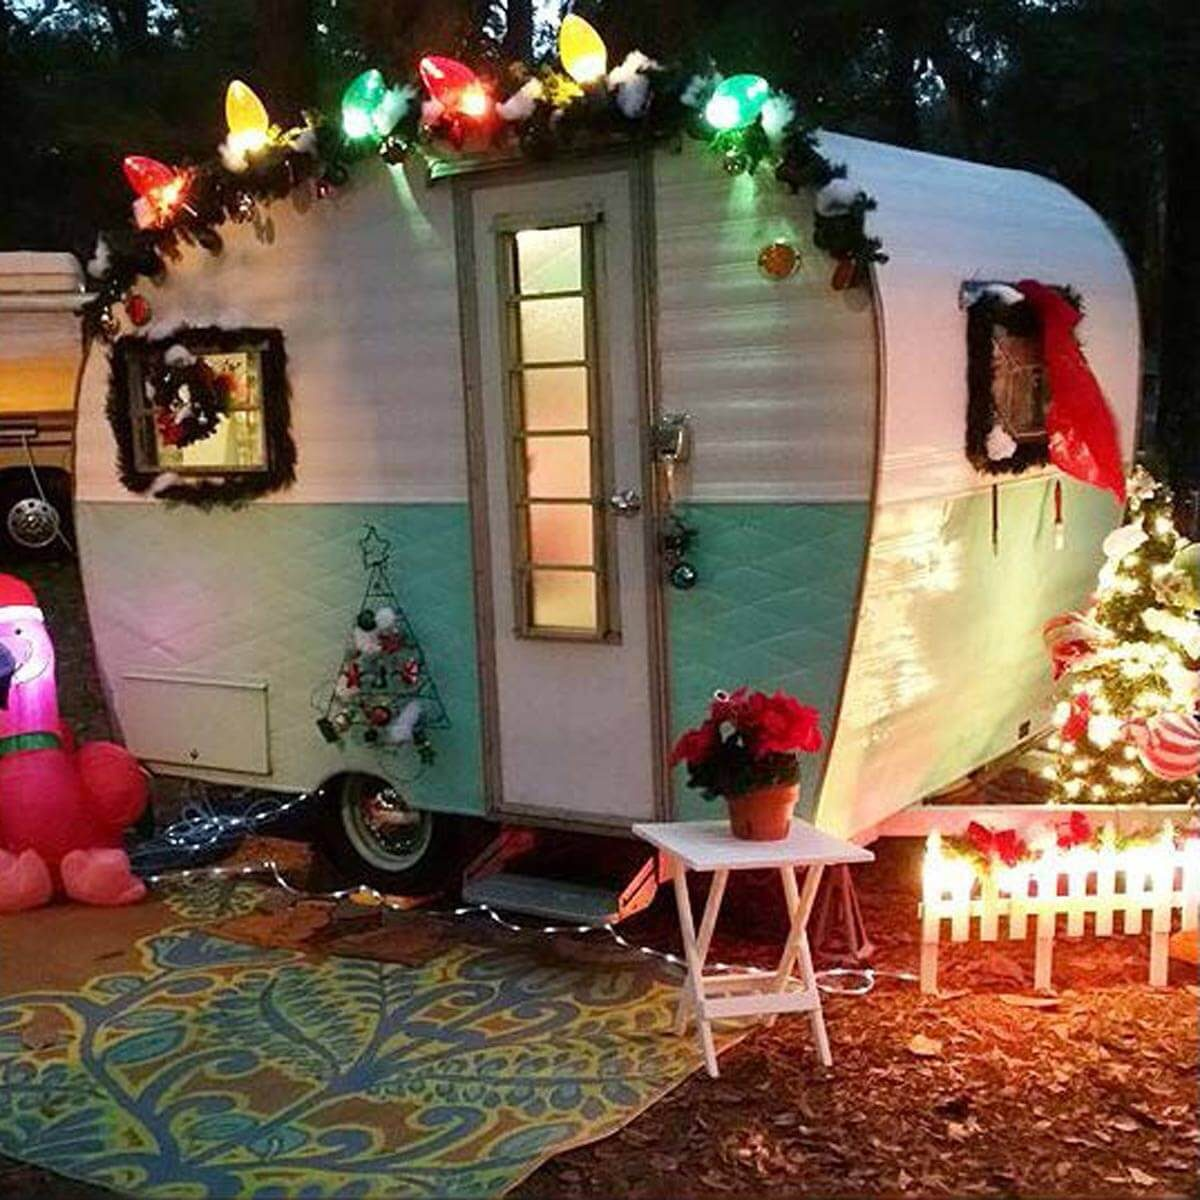 go big outside - Camper Christmas Decorations